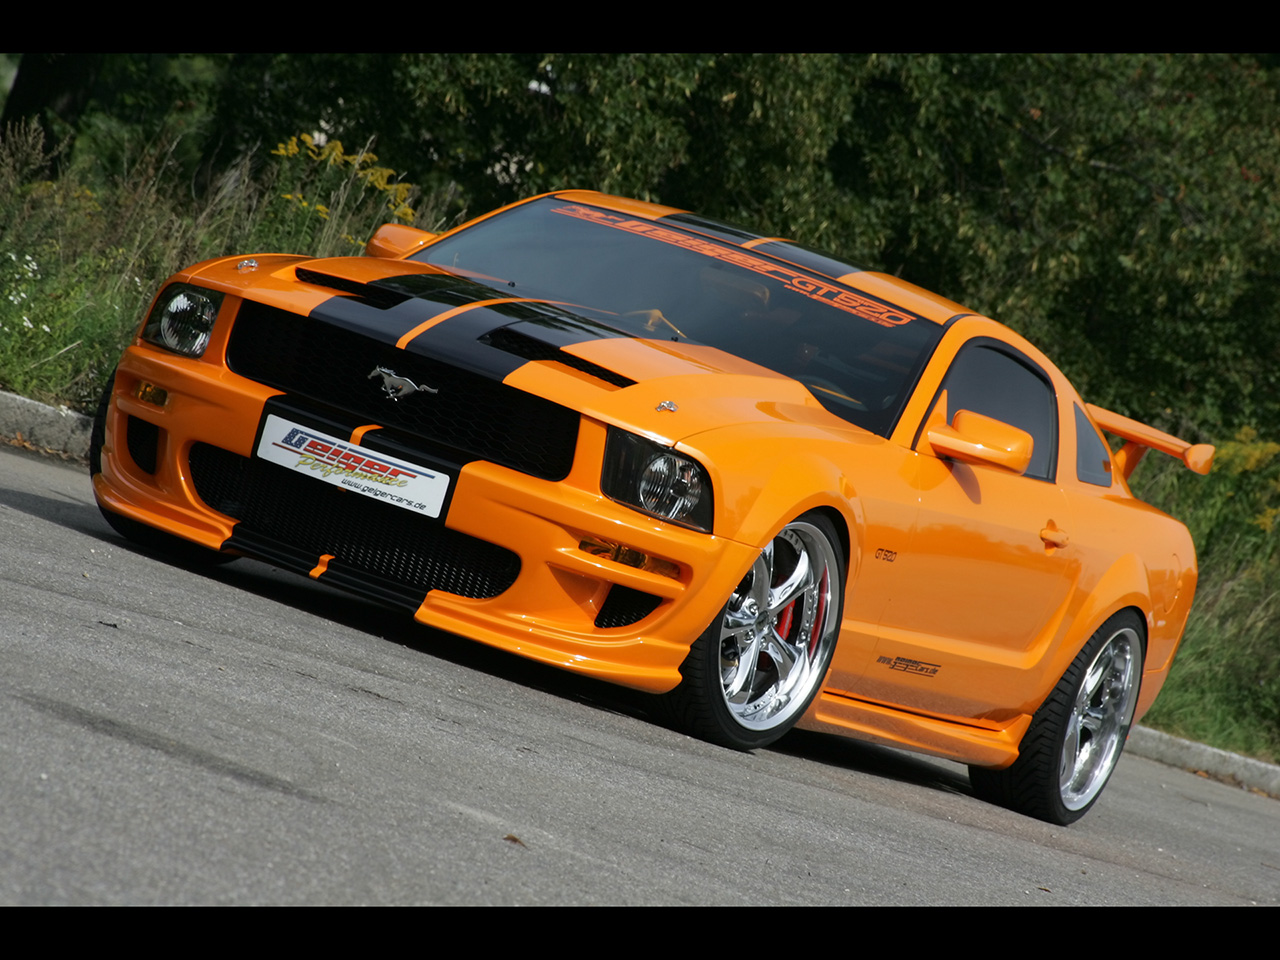 Ford Mustang Gt Wallpaper 1280x960 pixel Popular HD Wallpaper 36670 1280x960